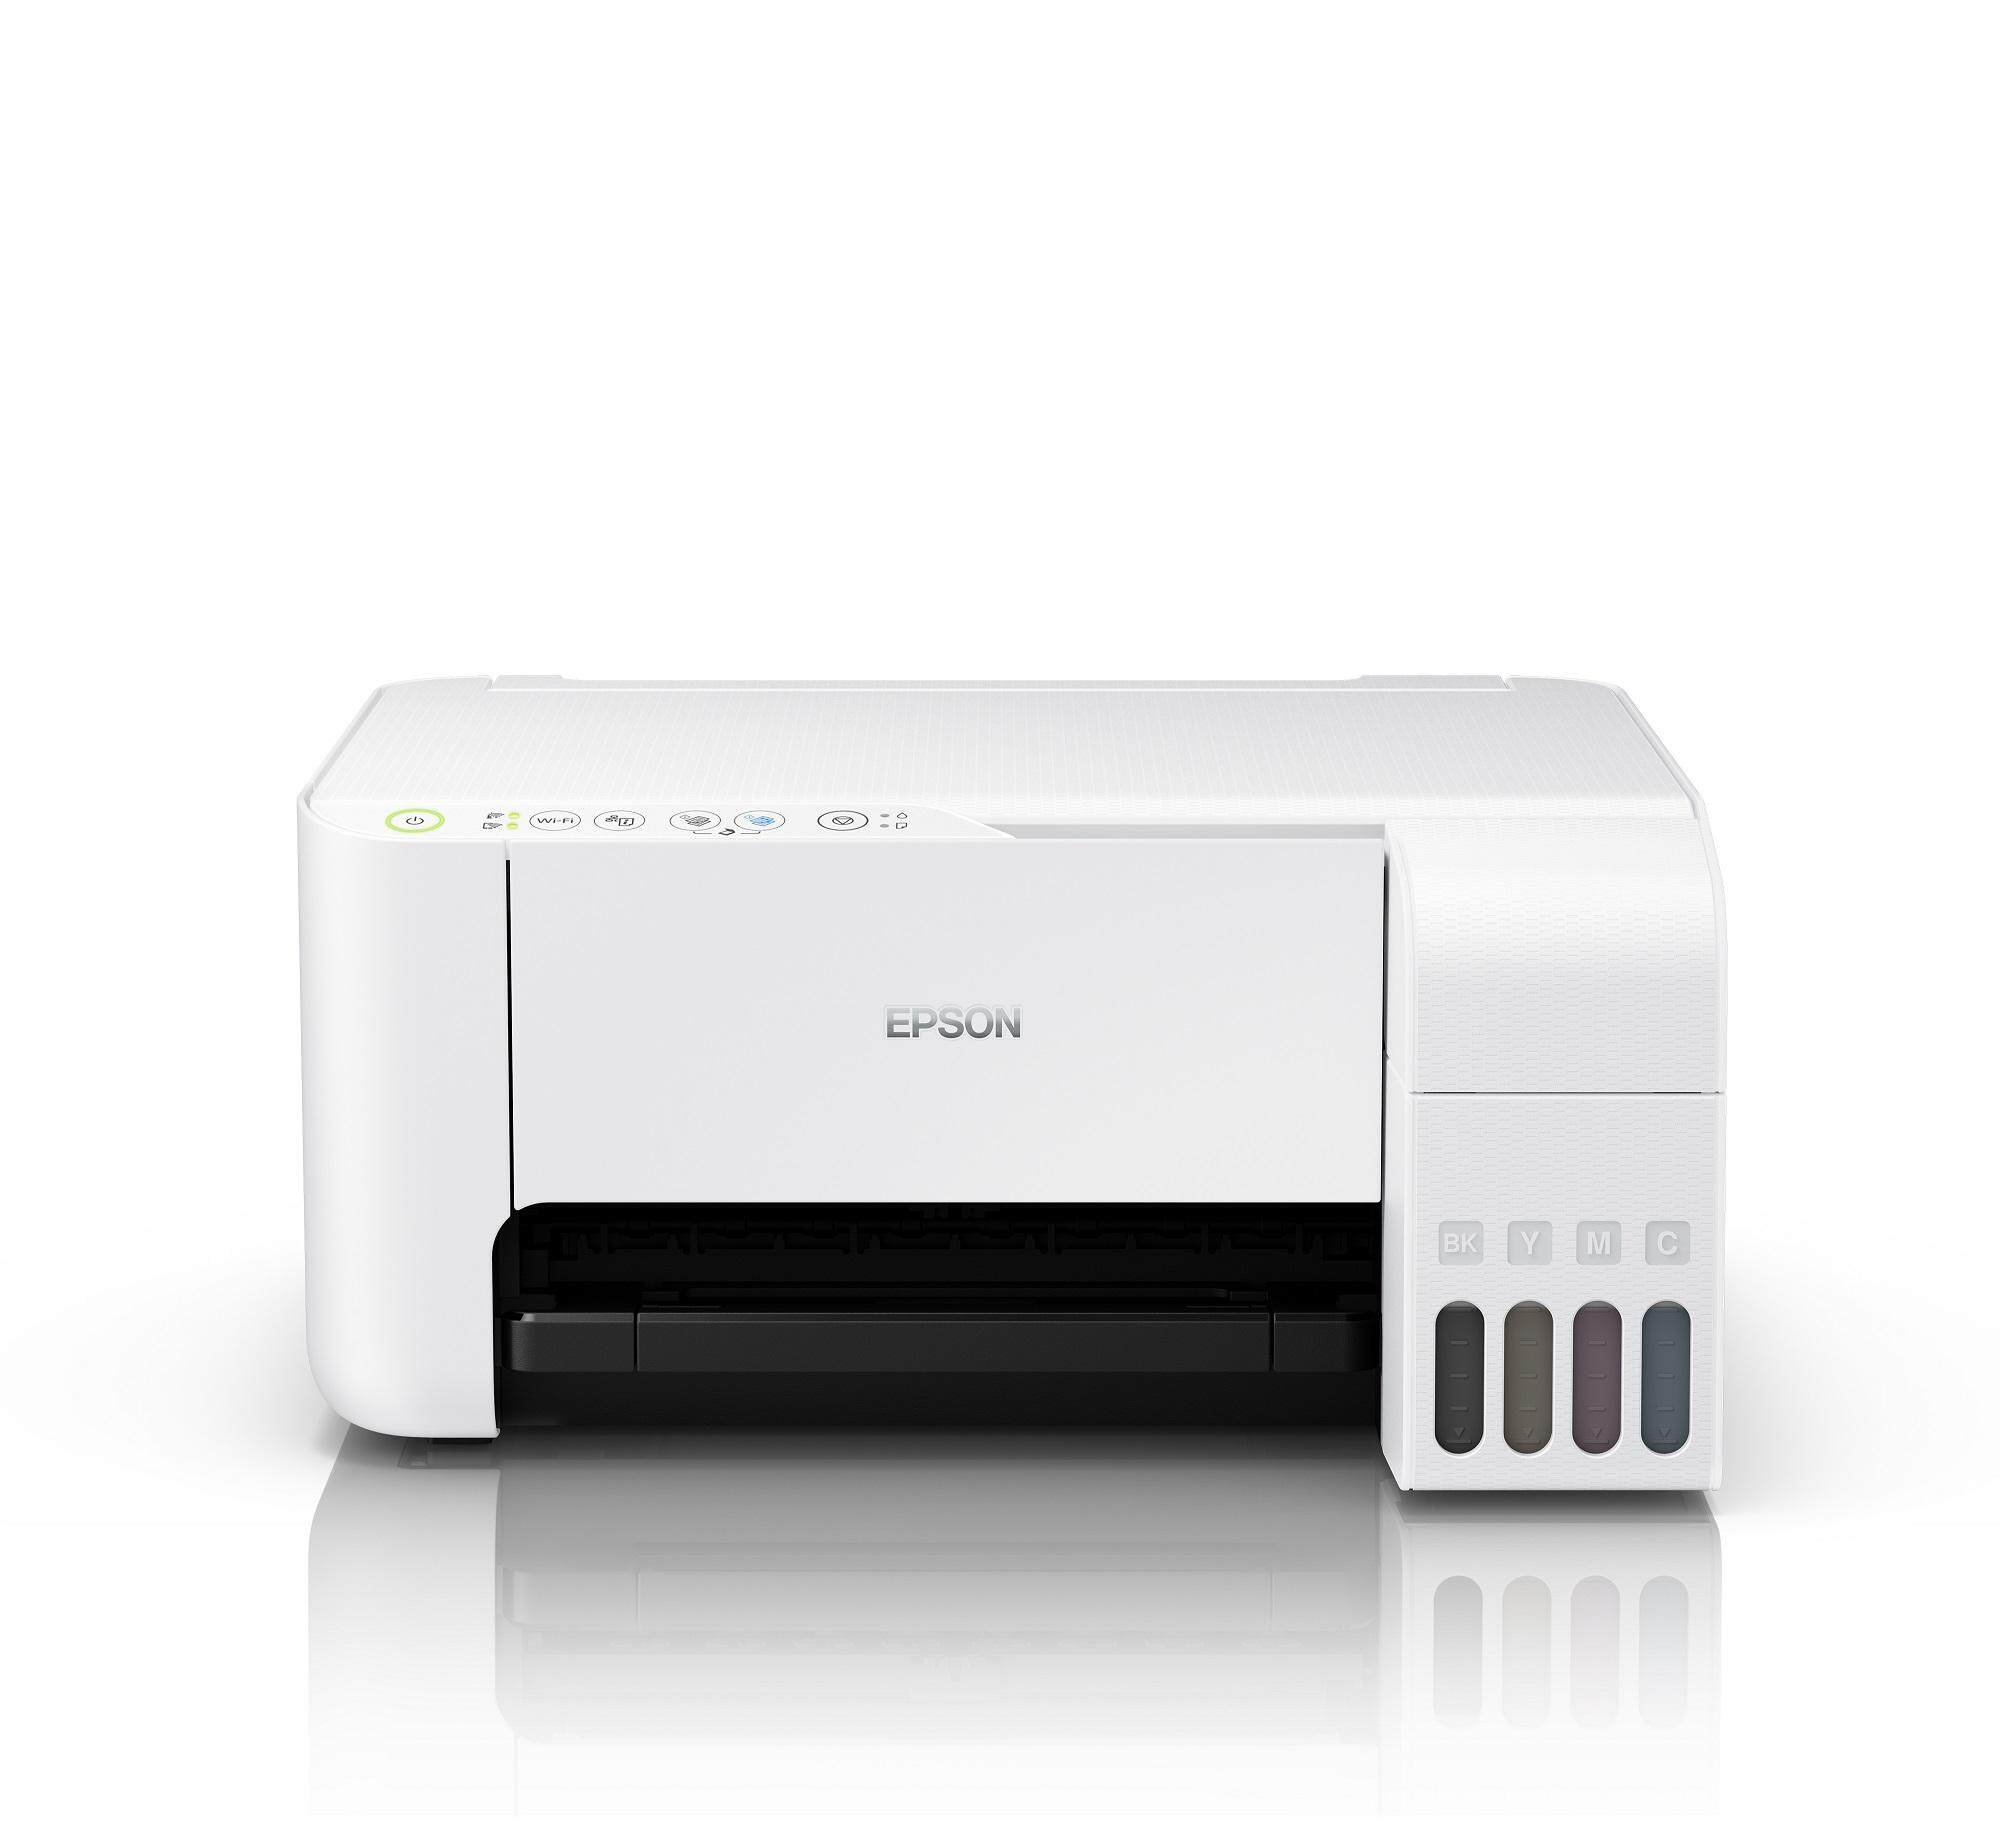 Epson EcoTank L3156 Wi-Fi All-in-One Ink Tank Printer (Same as L3150) using  Ink 003 + Free RM50 Starbucks E-Voucher